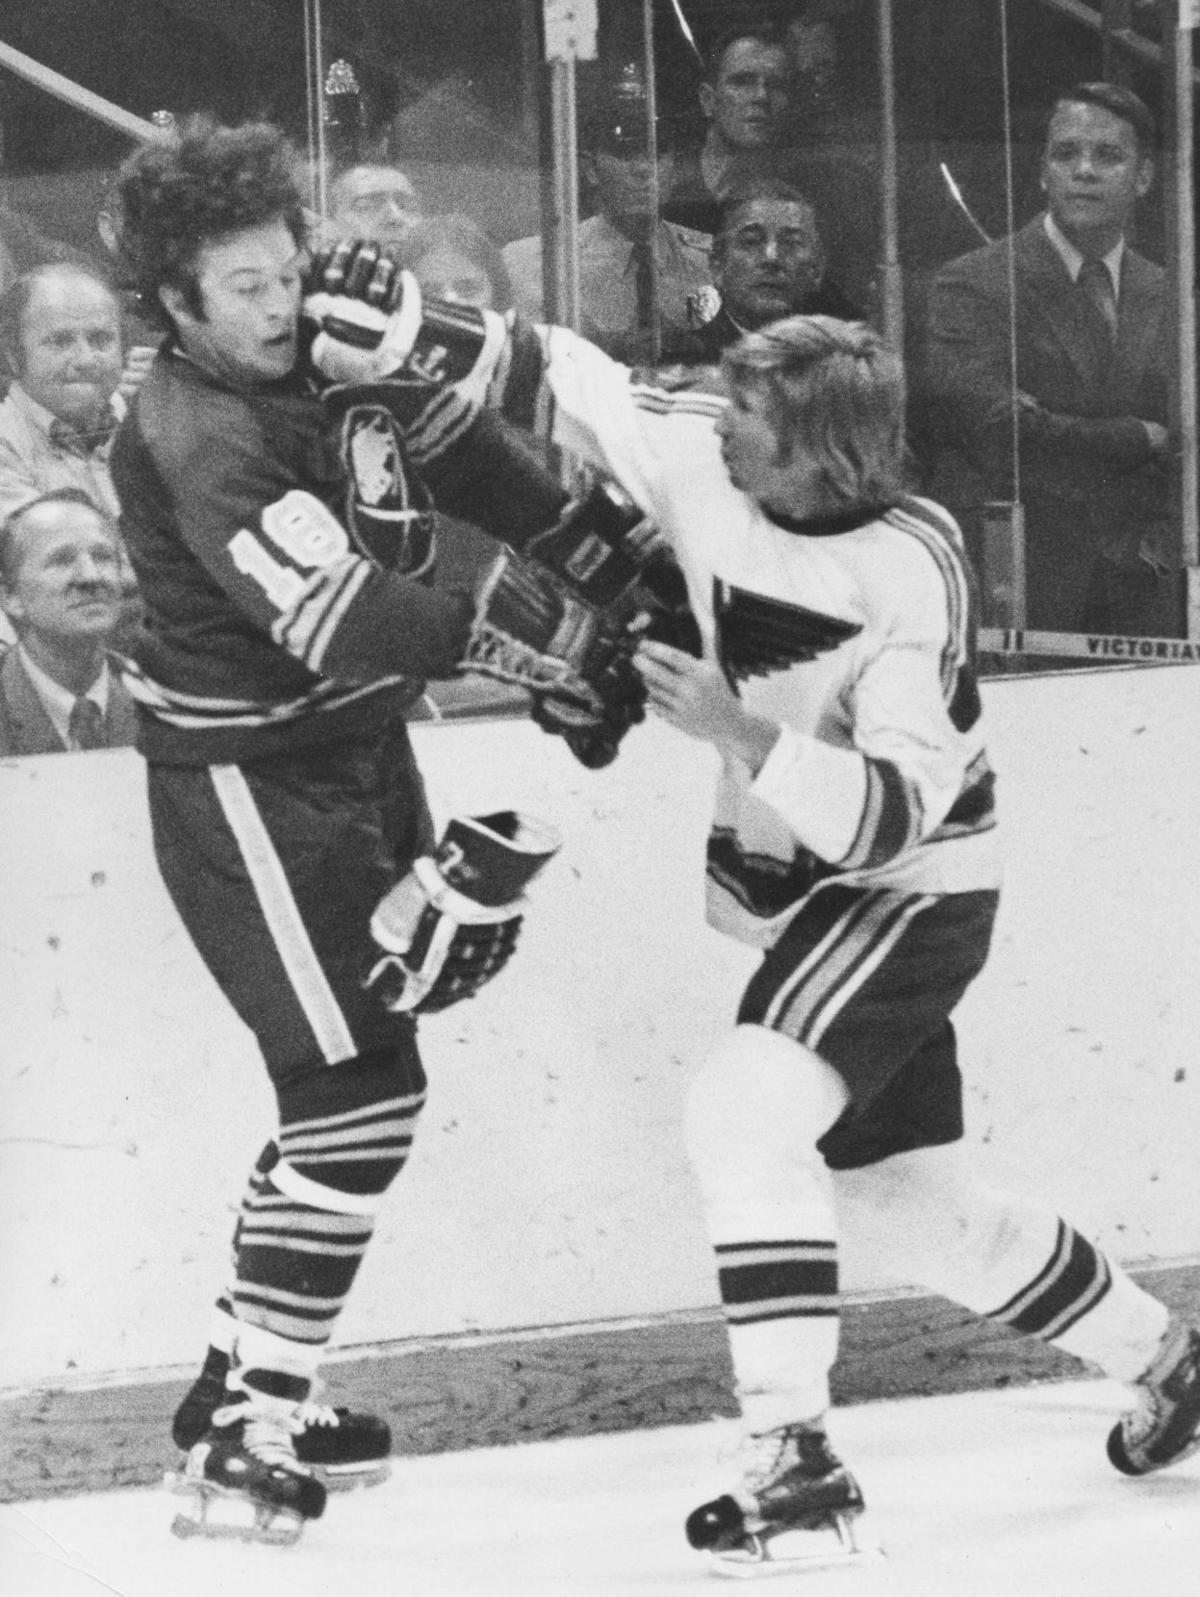 image - Garry Unger fighting during a 1971 game